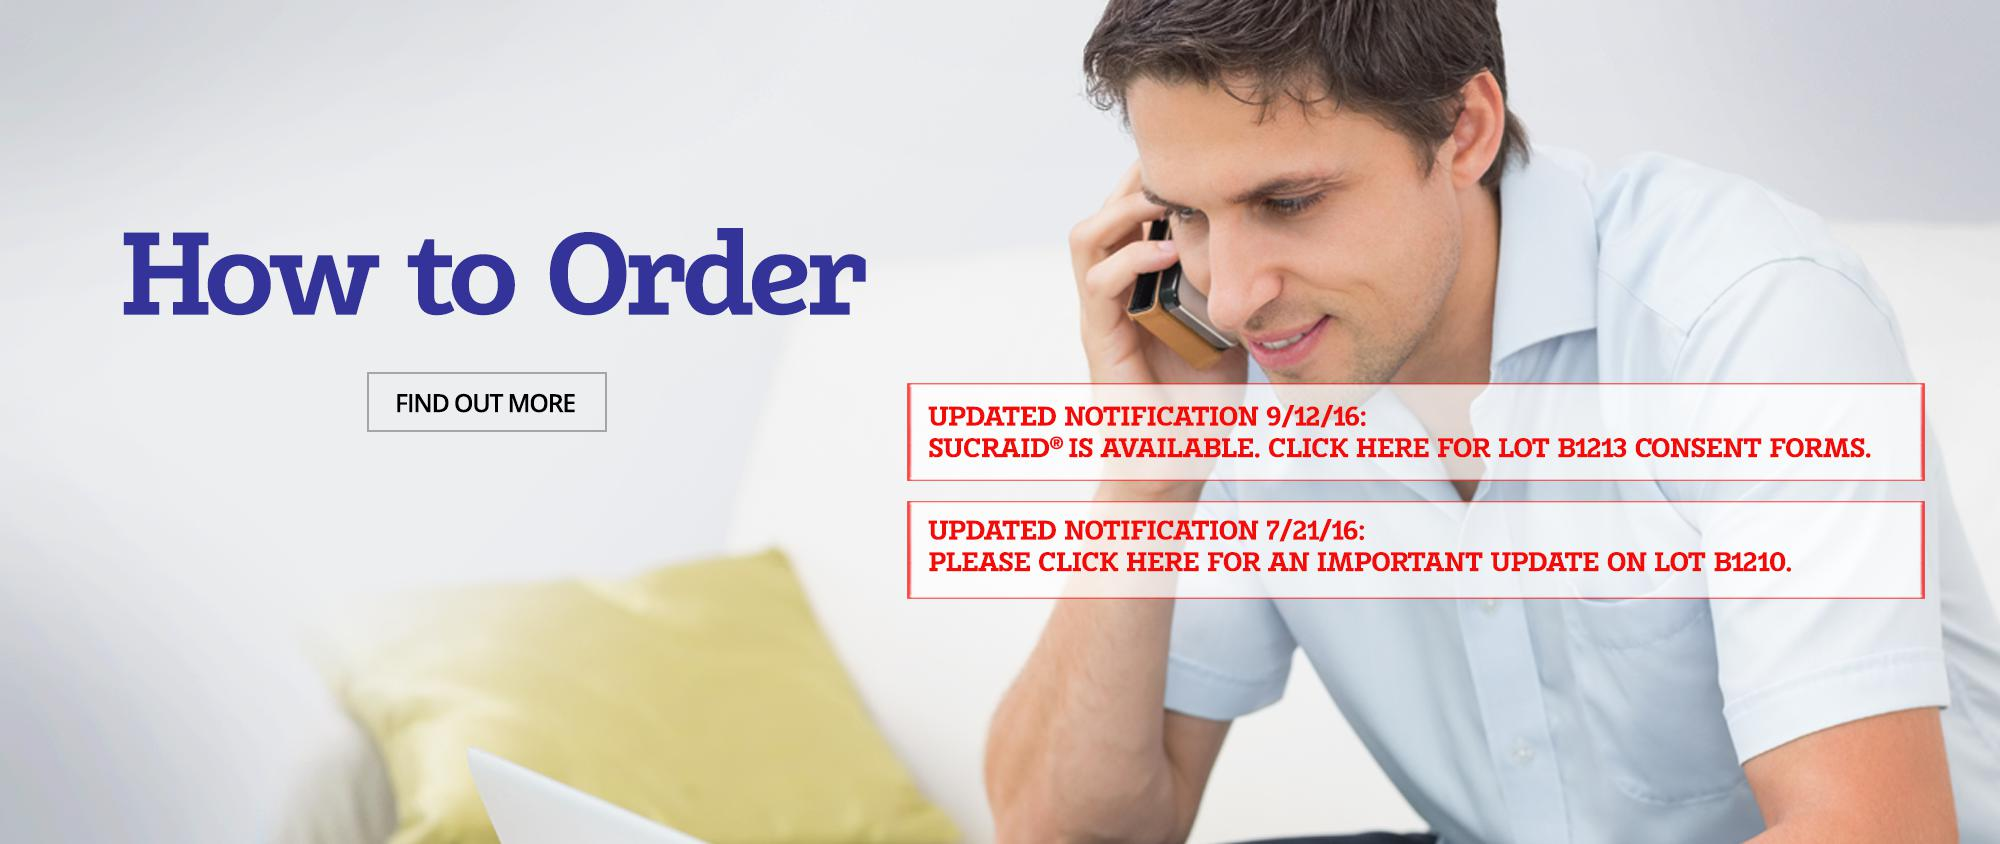 How to Order<sup> </sup>